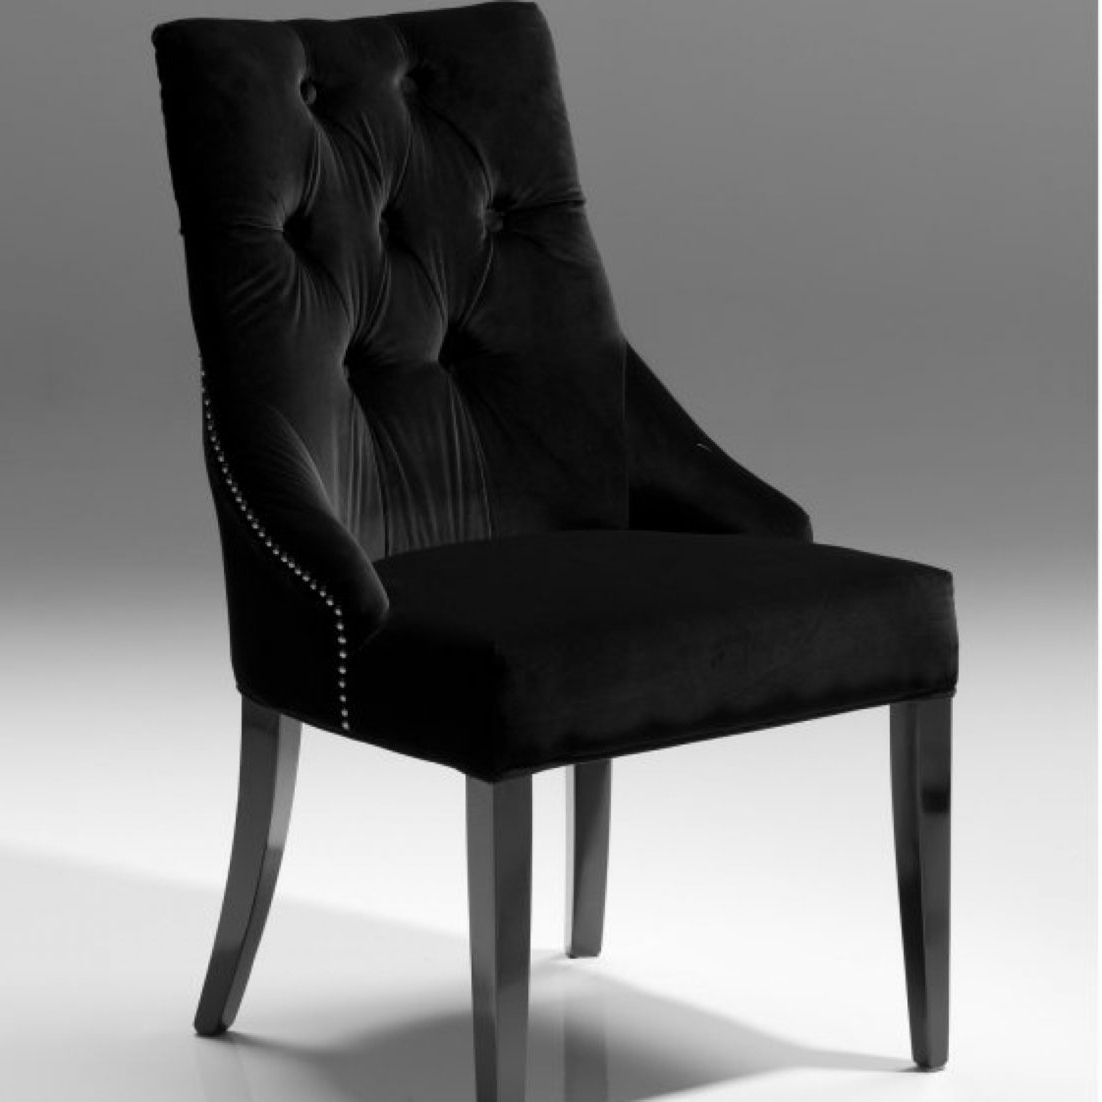 Dining Chairs Ebay Inside Popular Black Dining Chairs Small Set Ebay Cheap With Wood Table Chair (View 10 of 25)